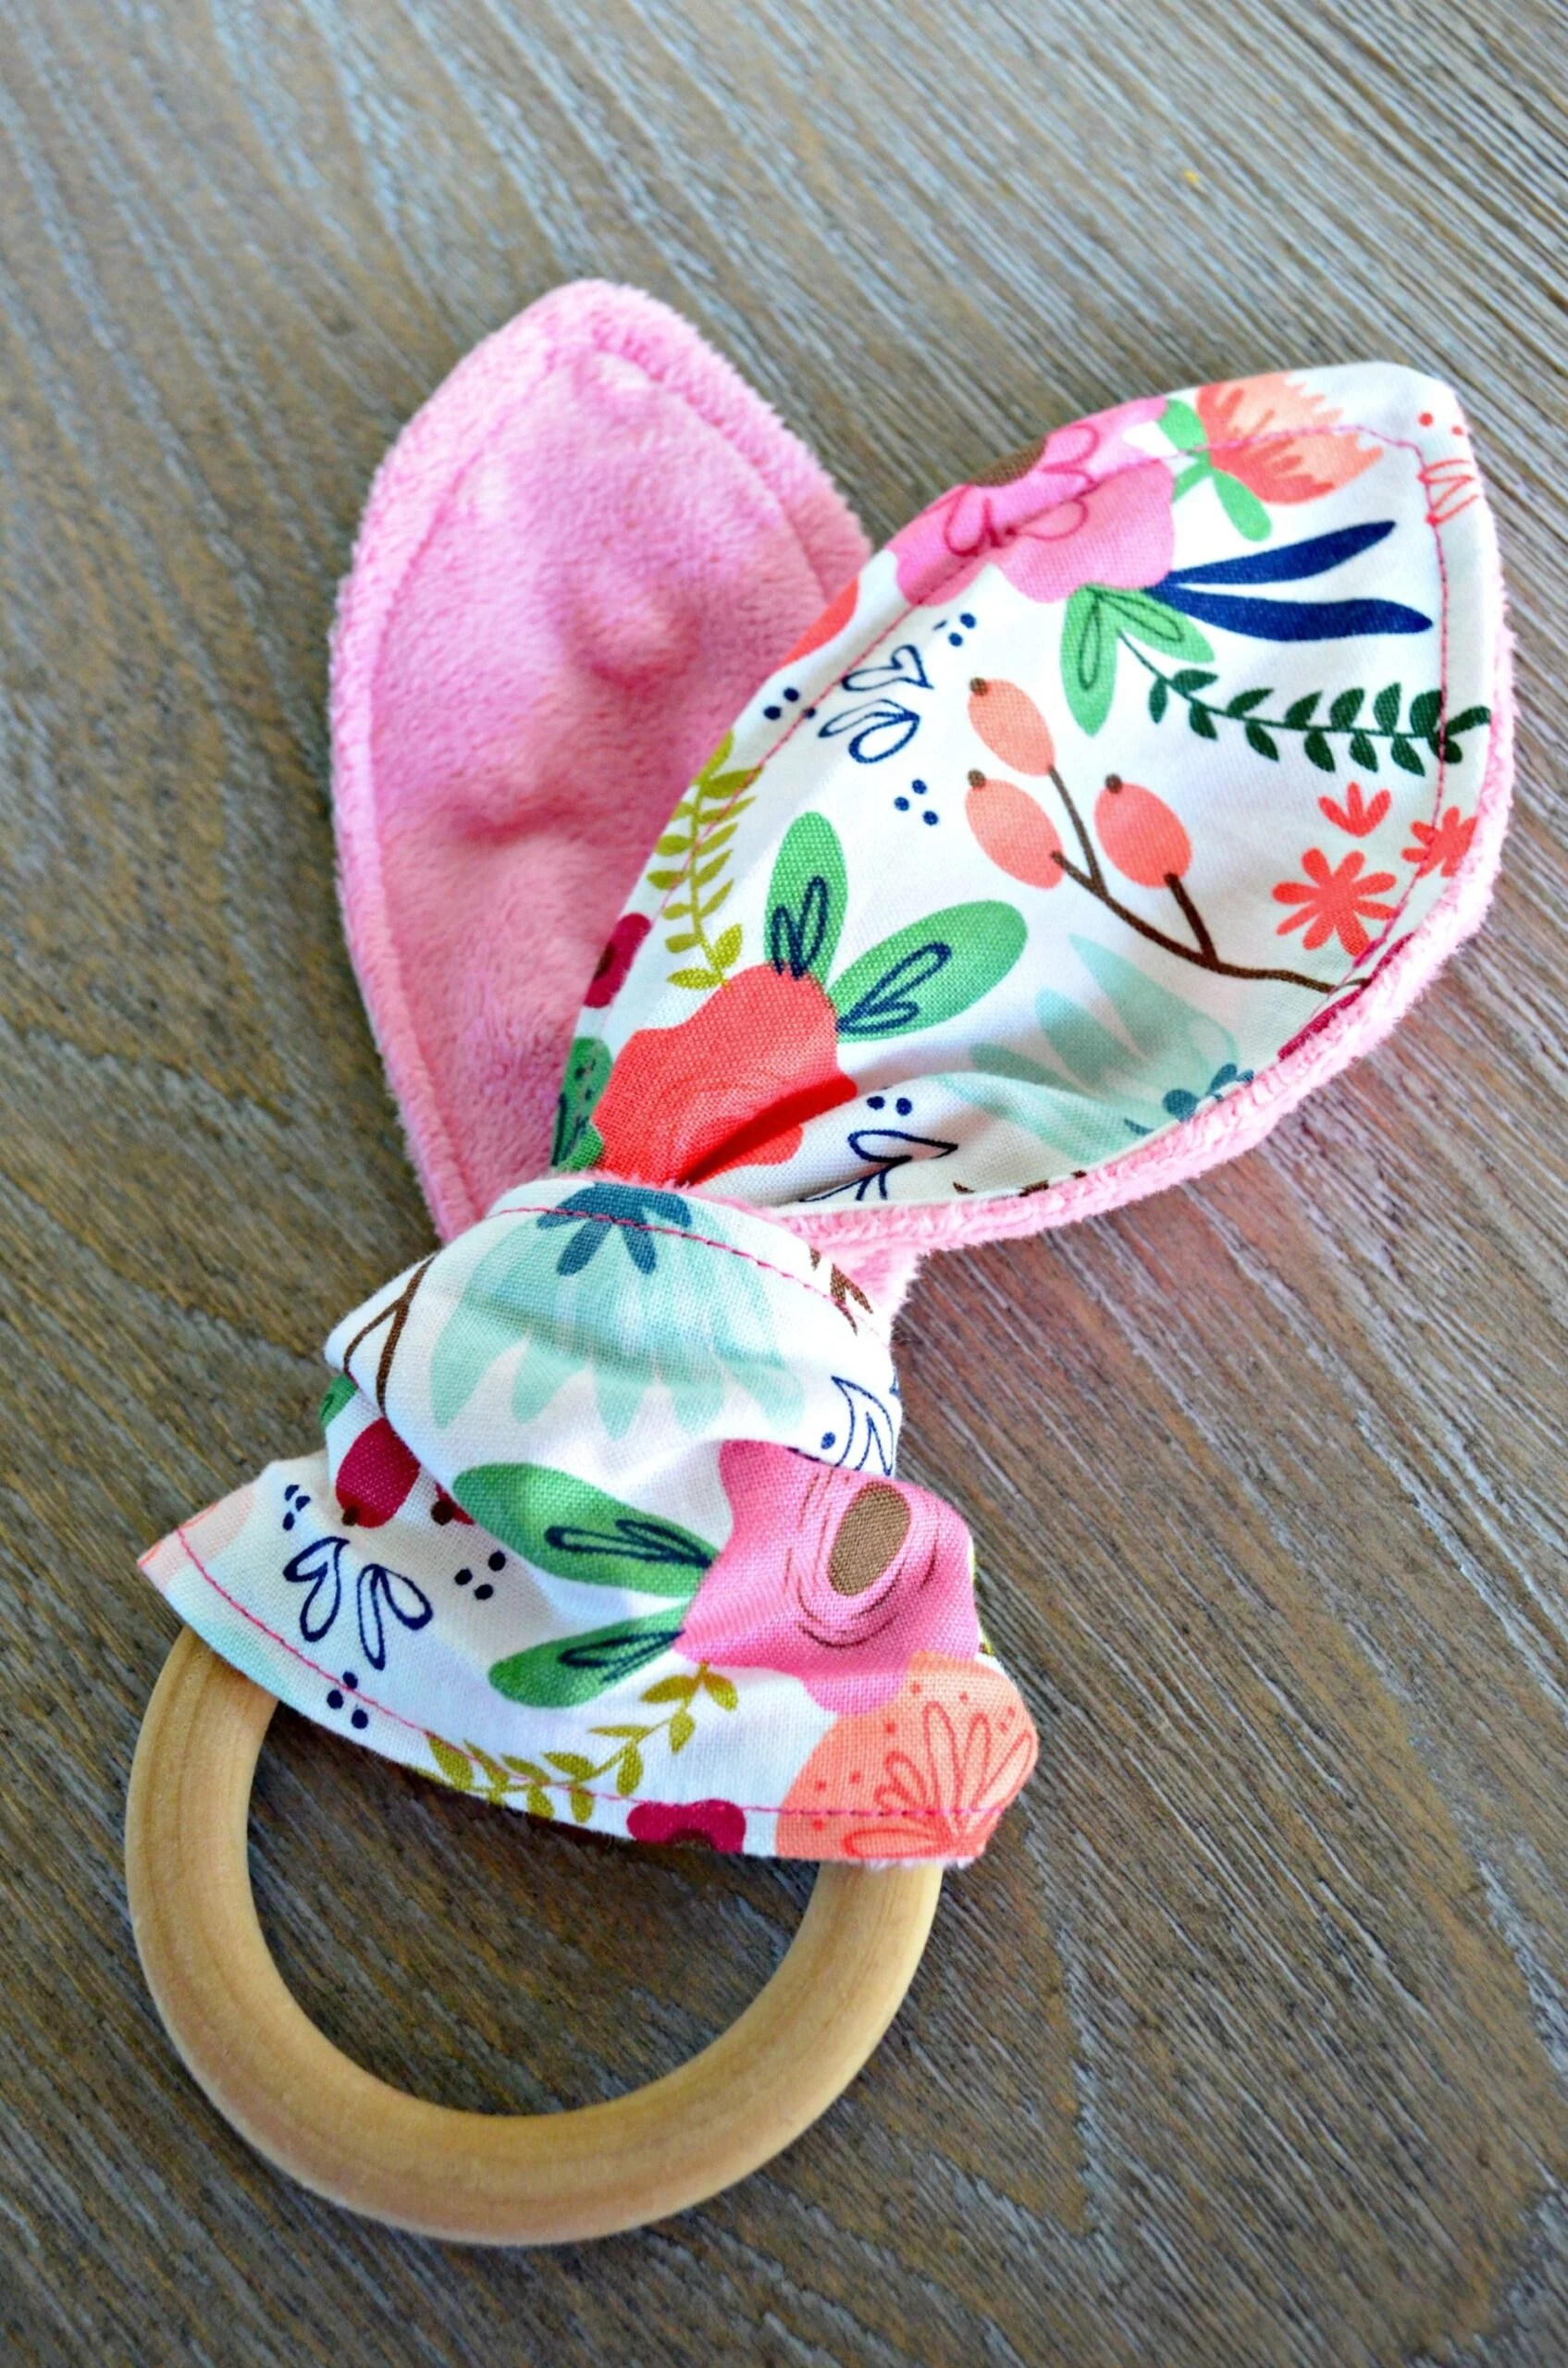 Wooden teething ring with pink and floral fabric tied around it.